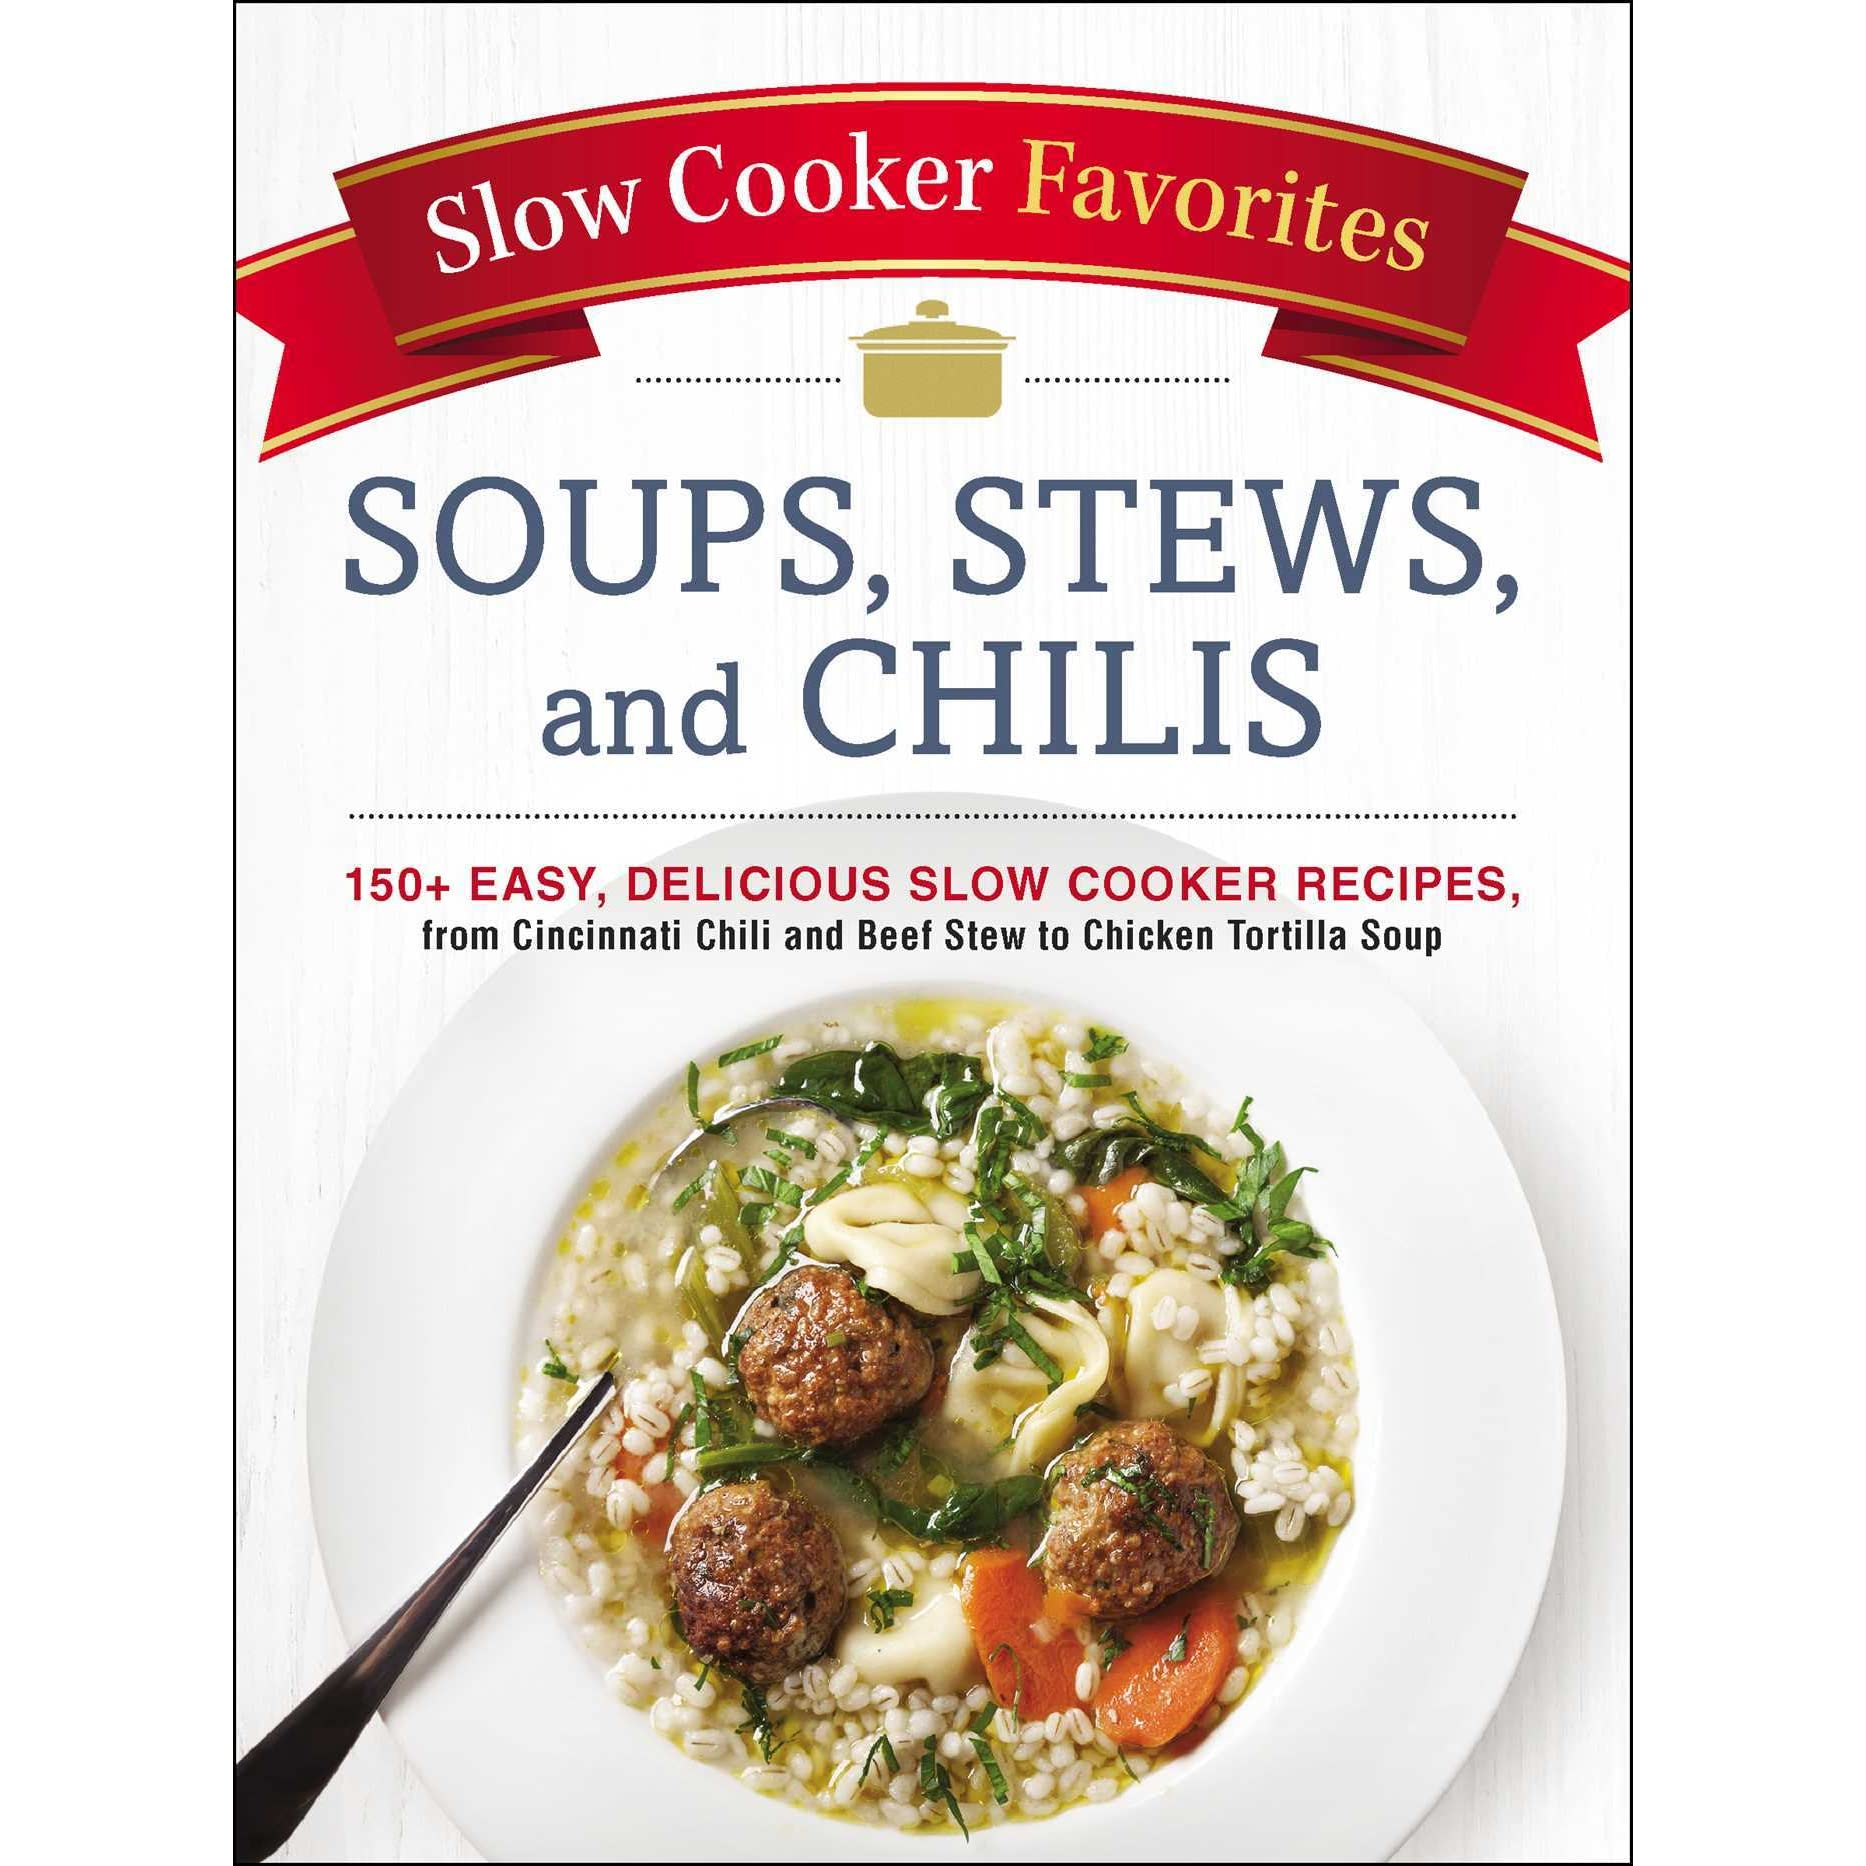 Slow Cooker Favorites Soups Stews And Chilis 150 Easy Delicious Slow Cooker Recipes From Cincinnati Chili And Beef Stew To Chicken Tortilla Soup By Adams Media